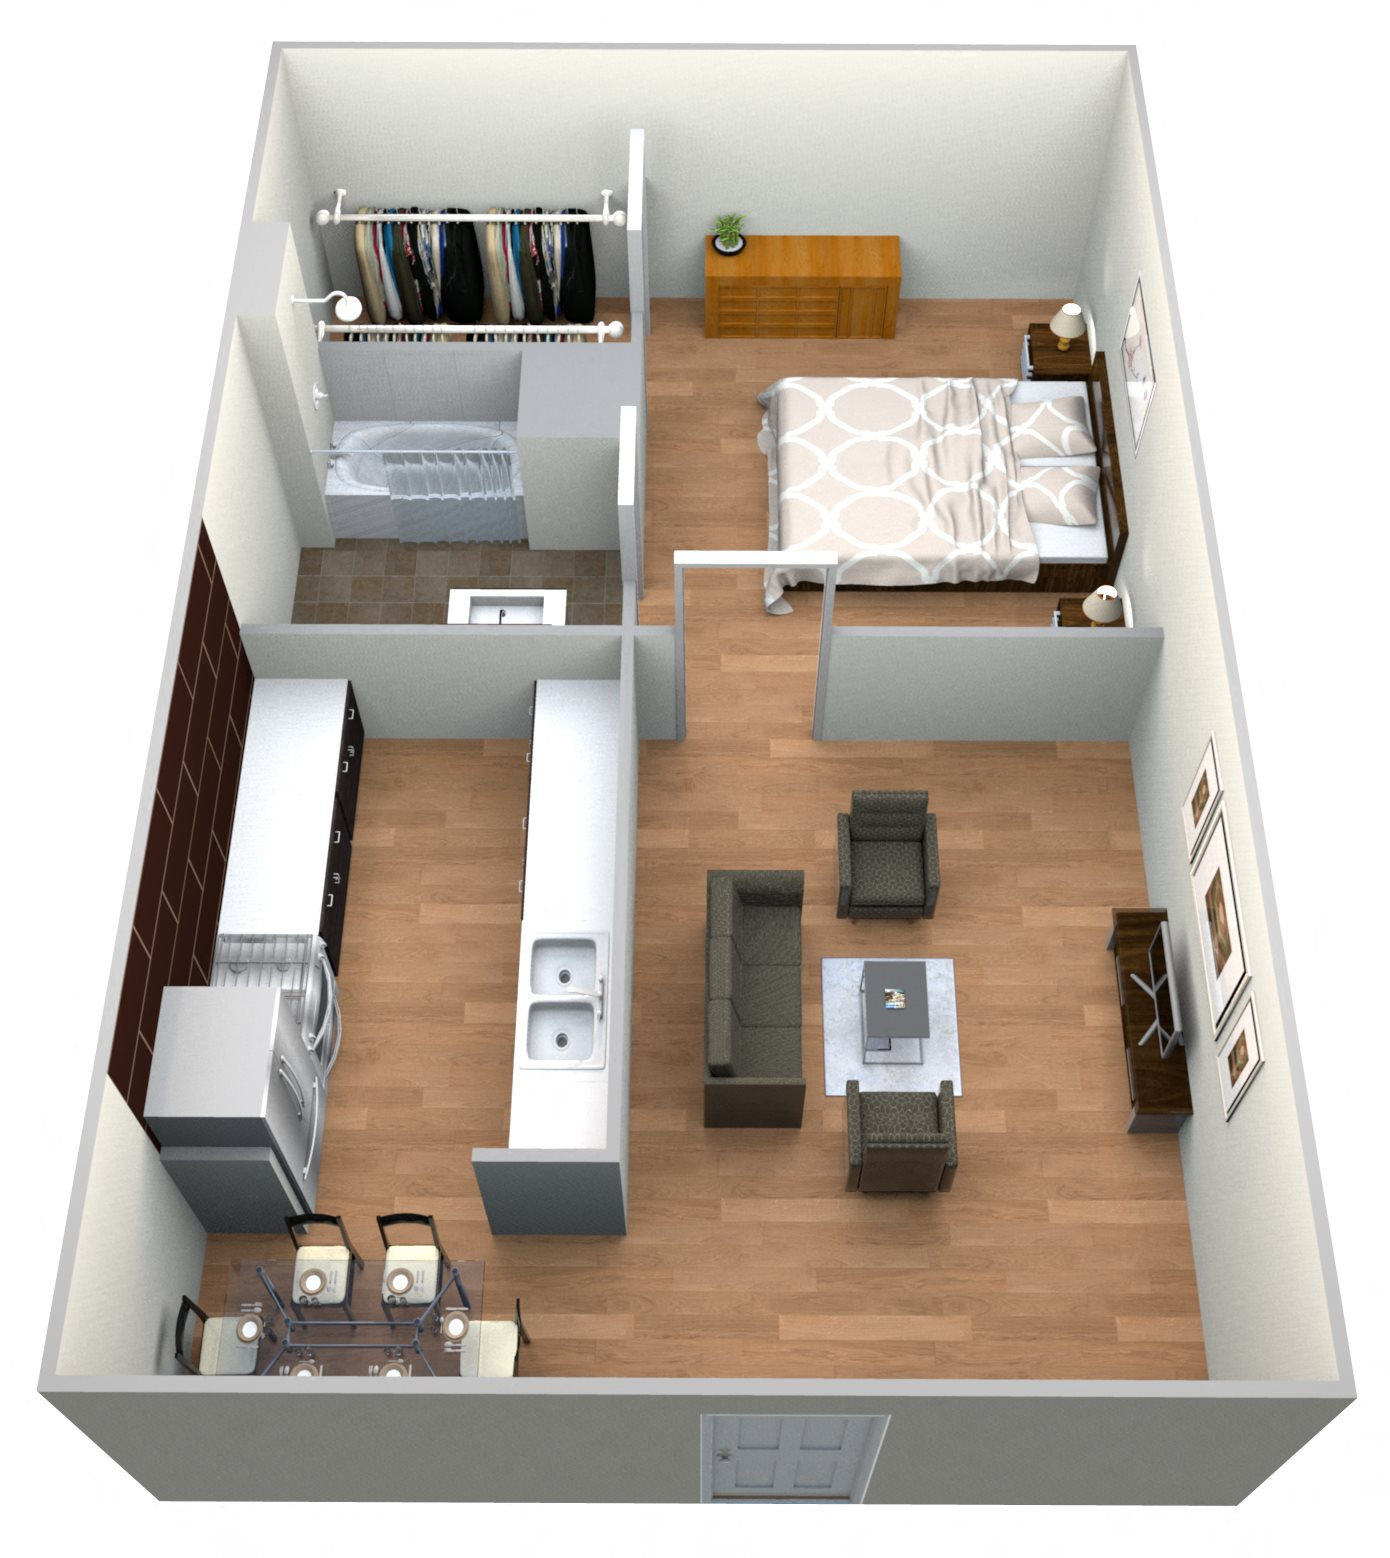 Bldg 8 - 1 bed 1 bath Floor Plan 2